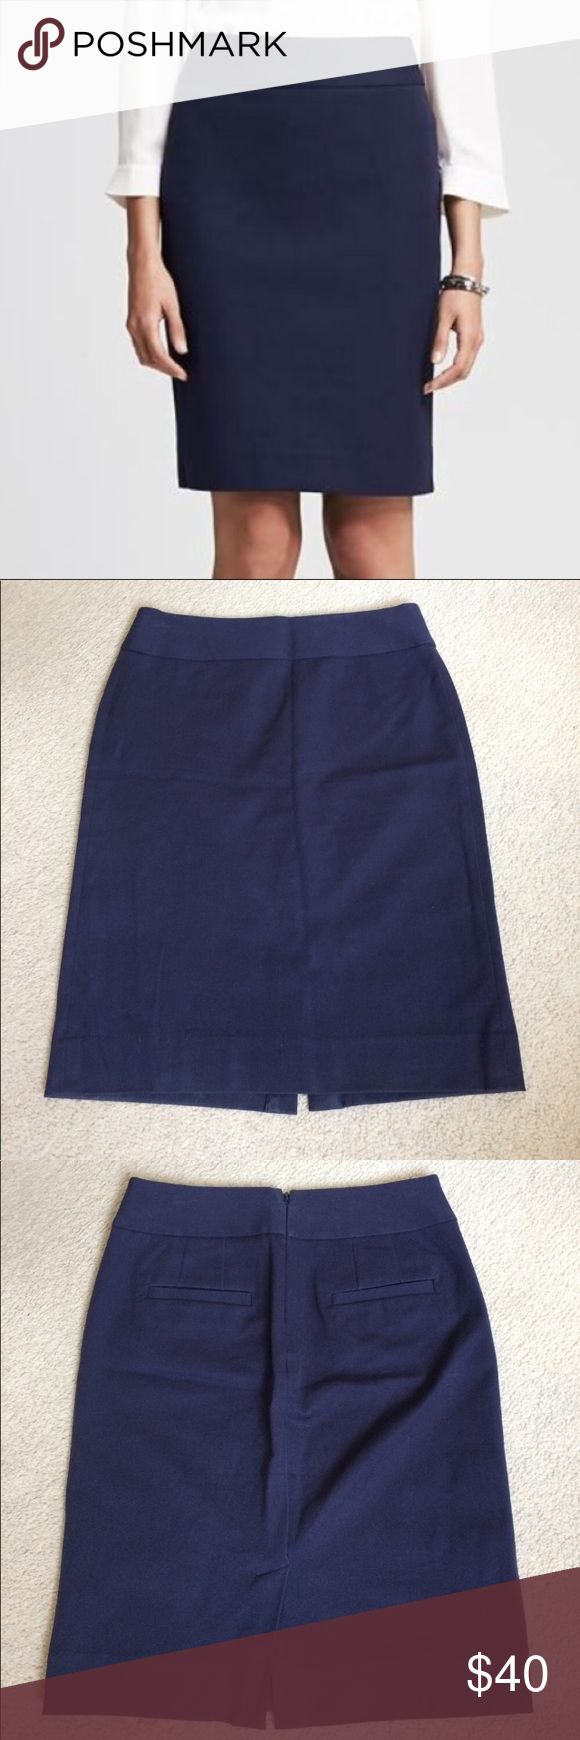 """Banana Republic Navy Pencil Skirt EUC Banana republic navy blue pencil skirt with slit in back. Perfect for business casual attire. 60% cotton 35% viscose 5% spandex. Waist 14 1/2"""" length 22 1/2"""". Only worn once or twice and in excellent used condition. Banana Republic Skirts Pencil"""